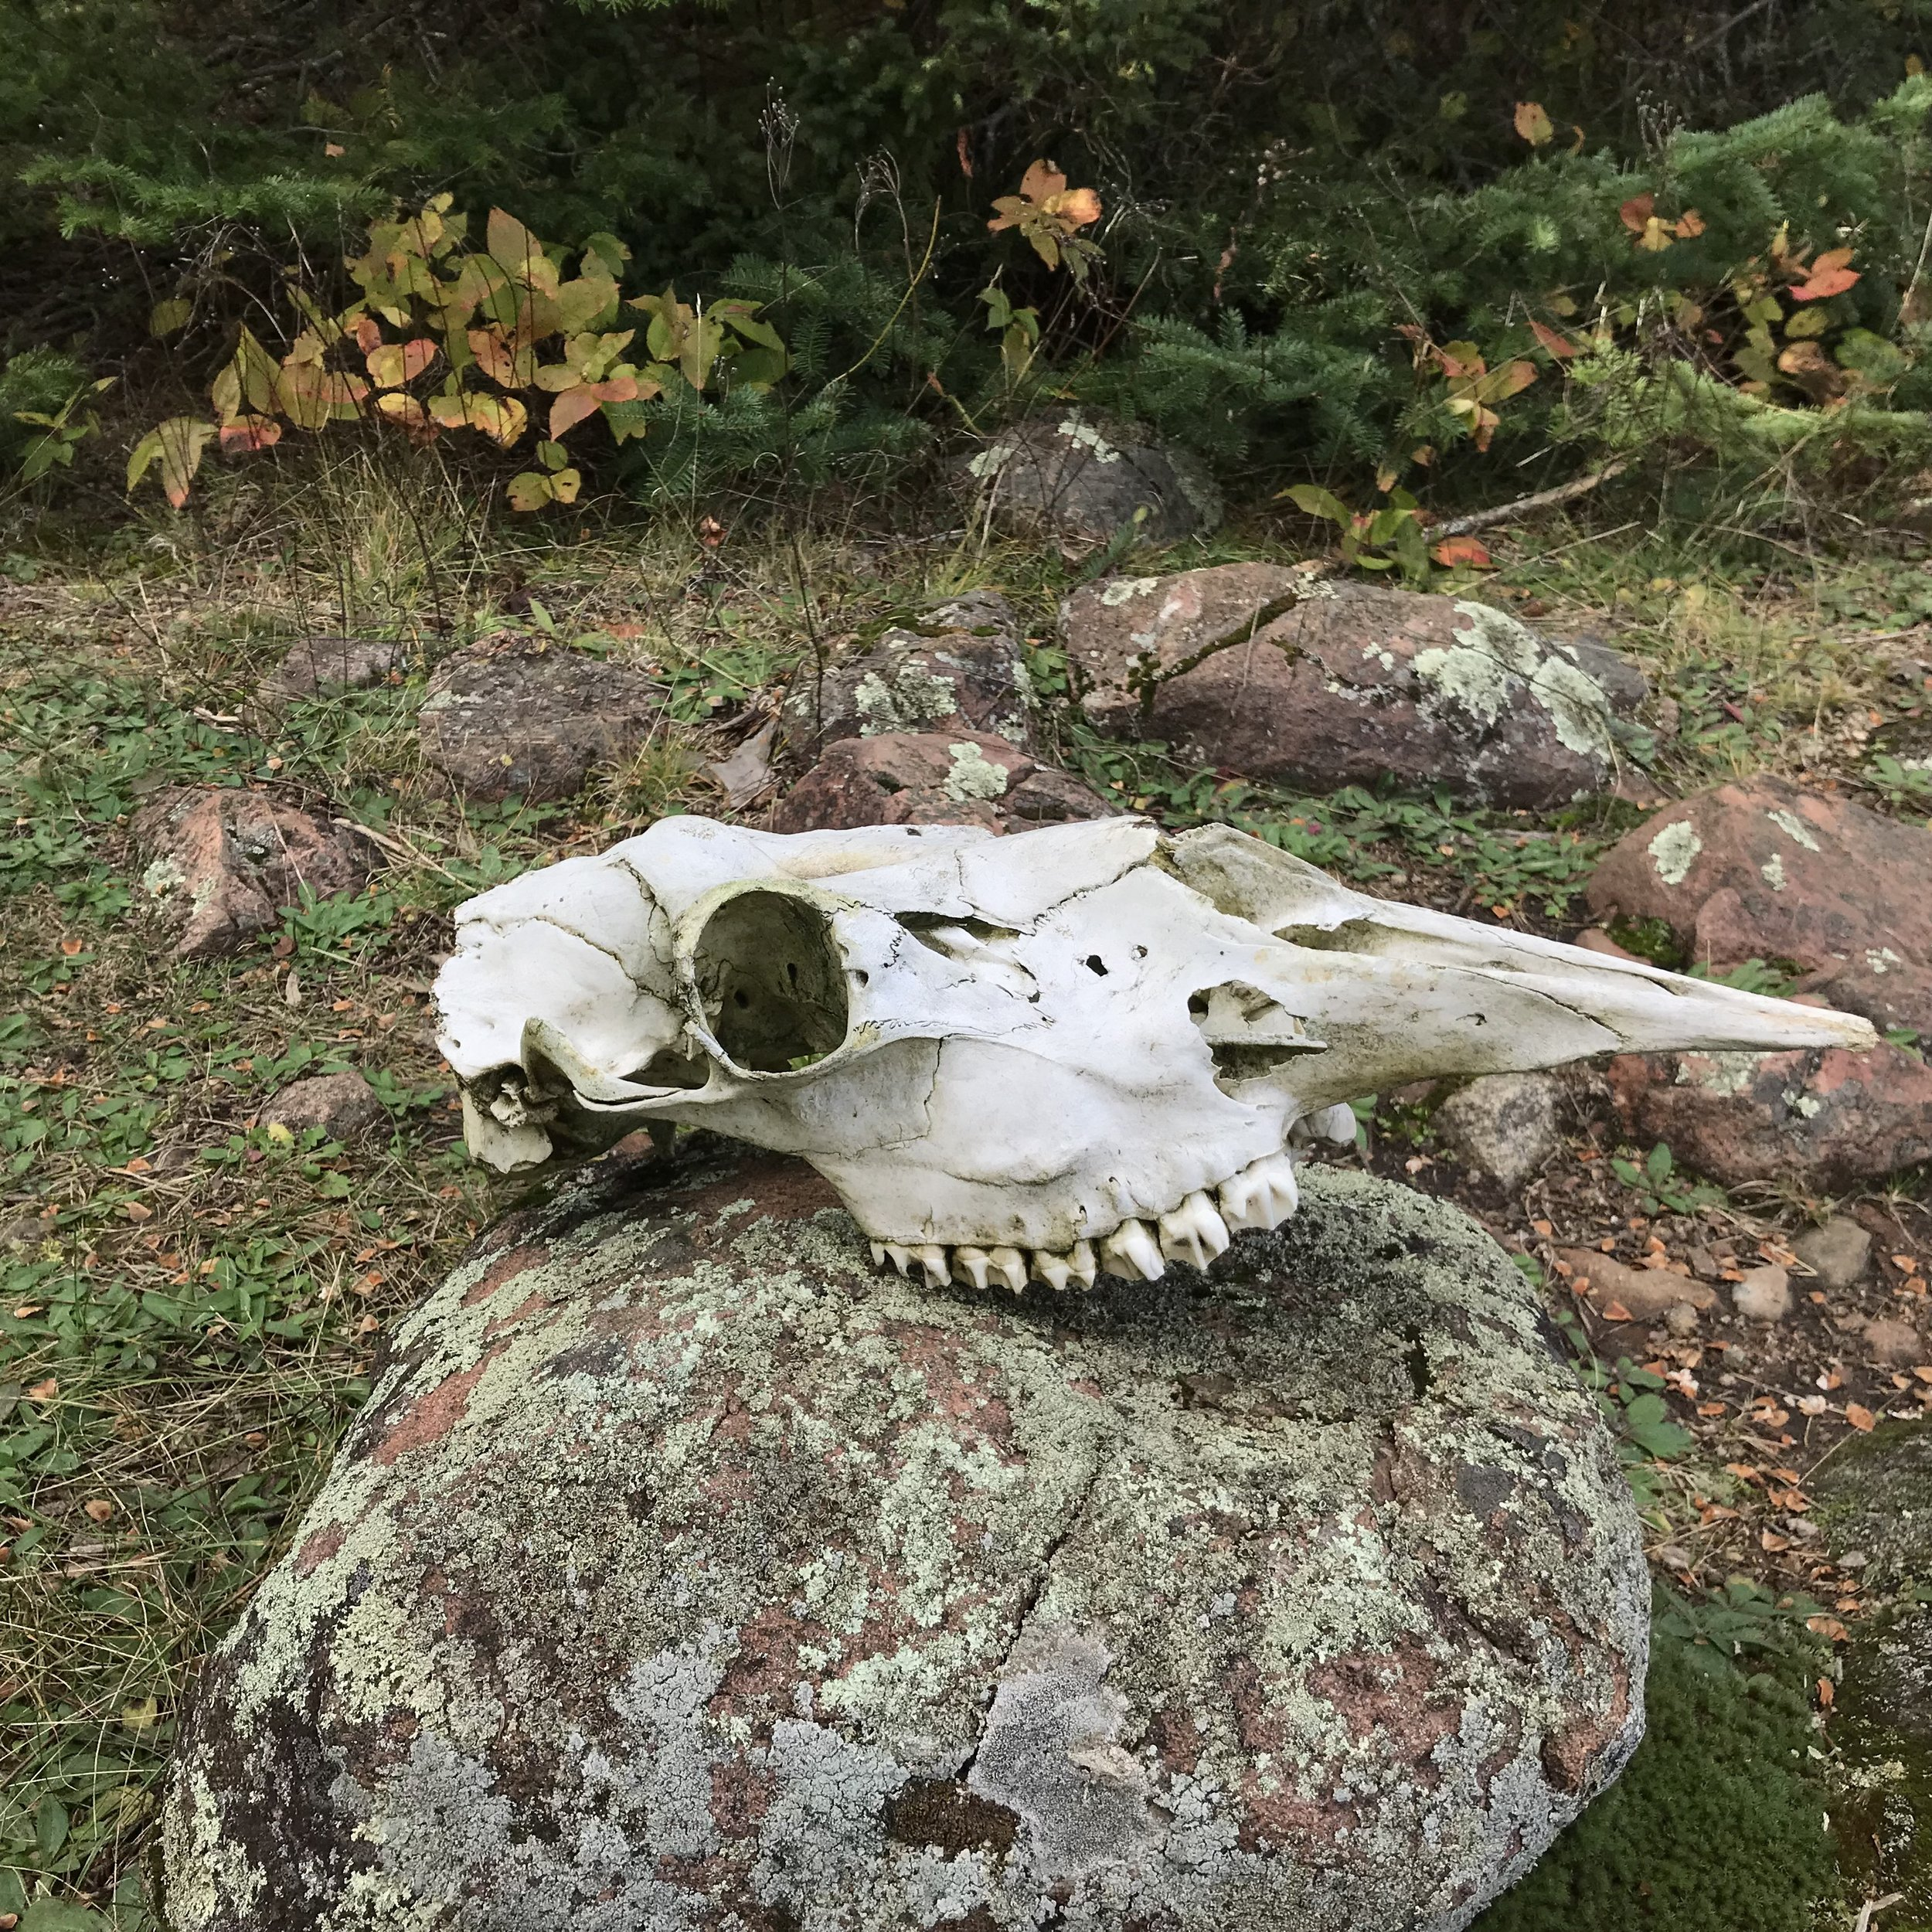 We believe that it is a moose skull, but no one was able to confirm.